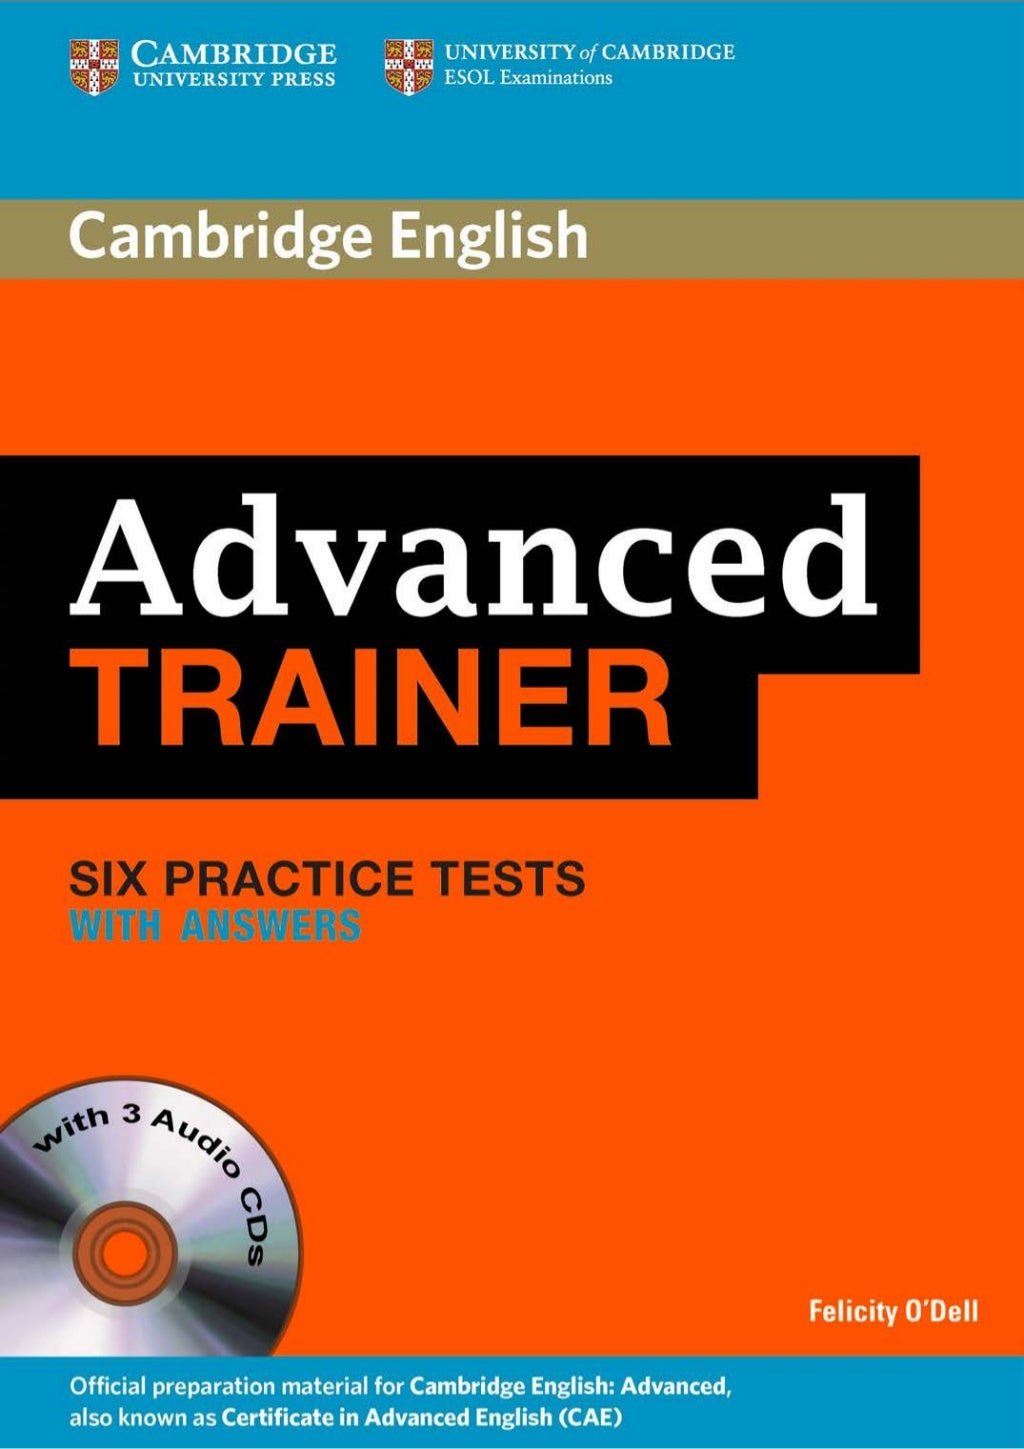 Advanced trainer 6 practice tests with answers book4joy (1)